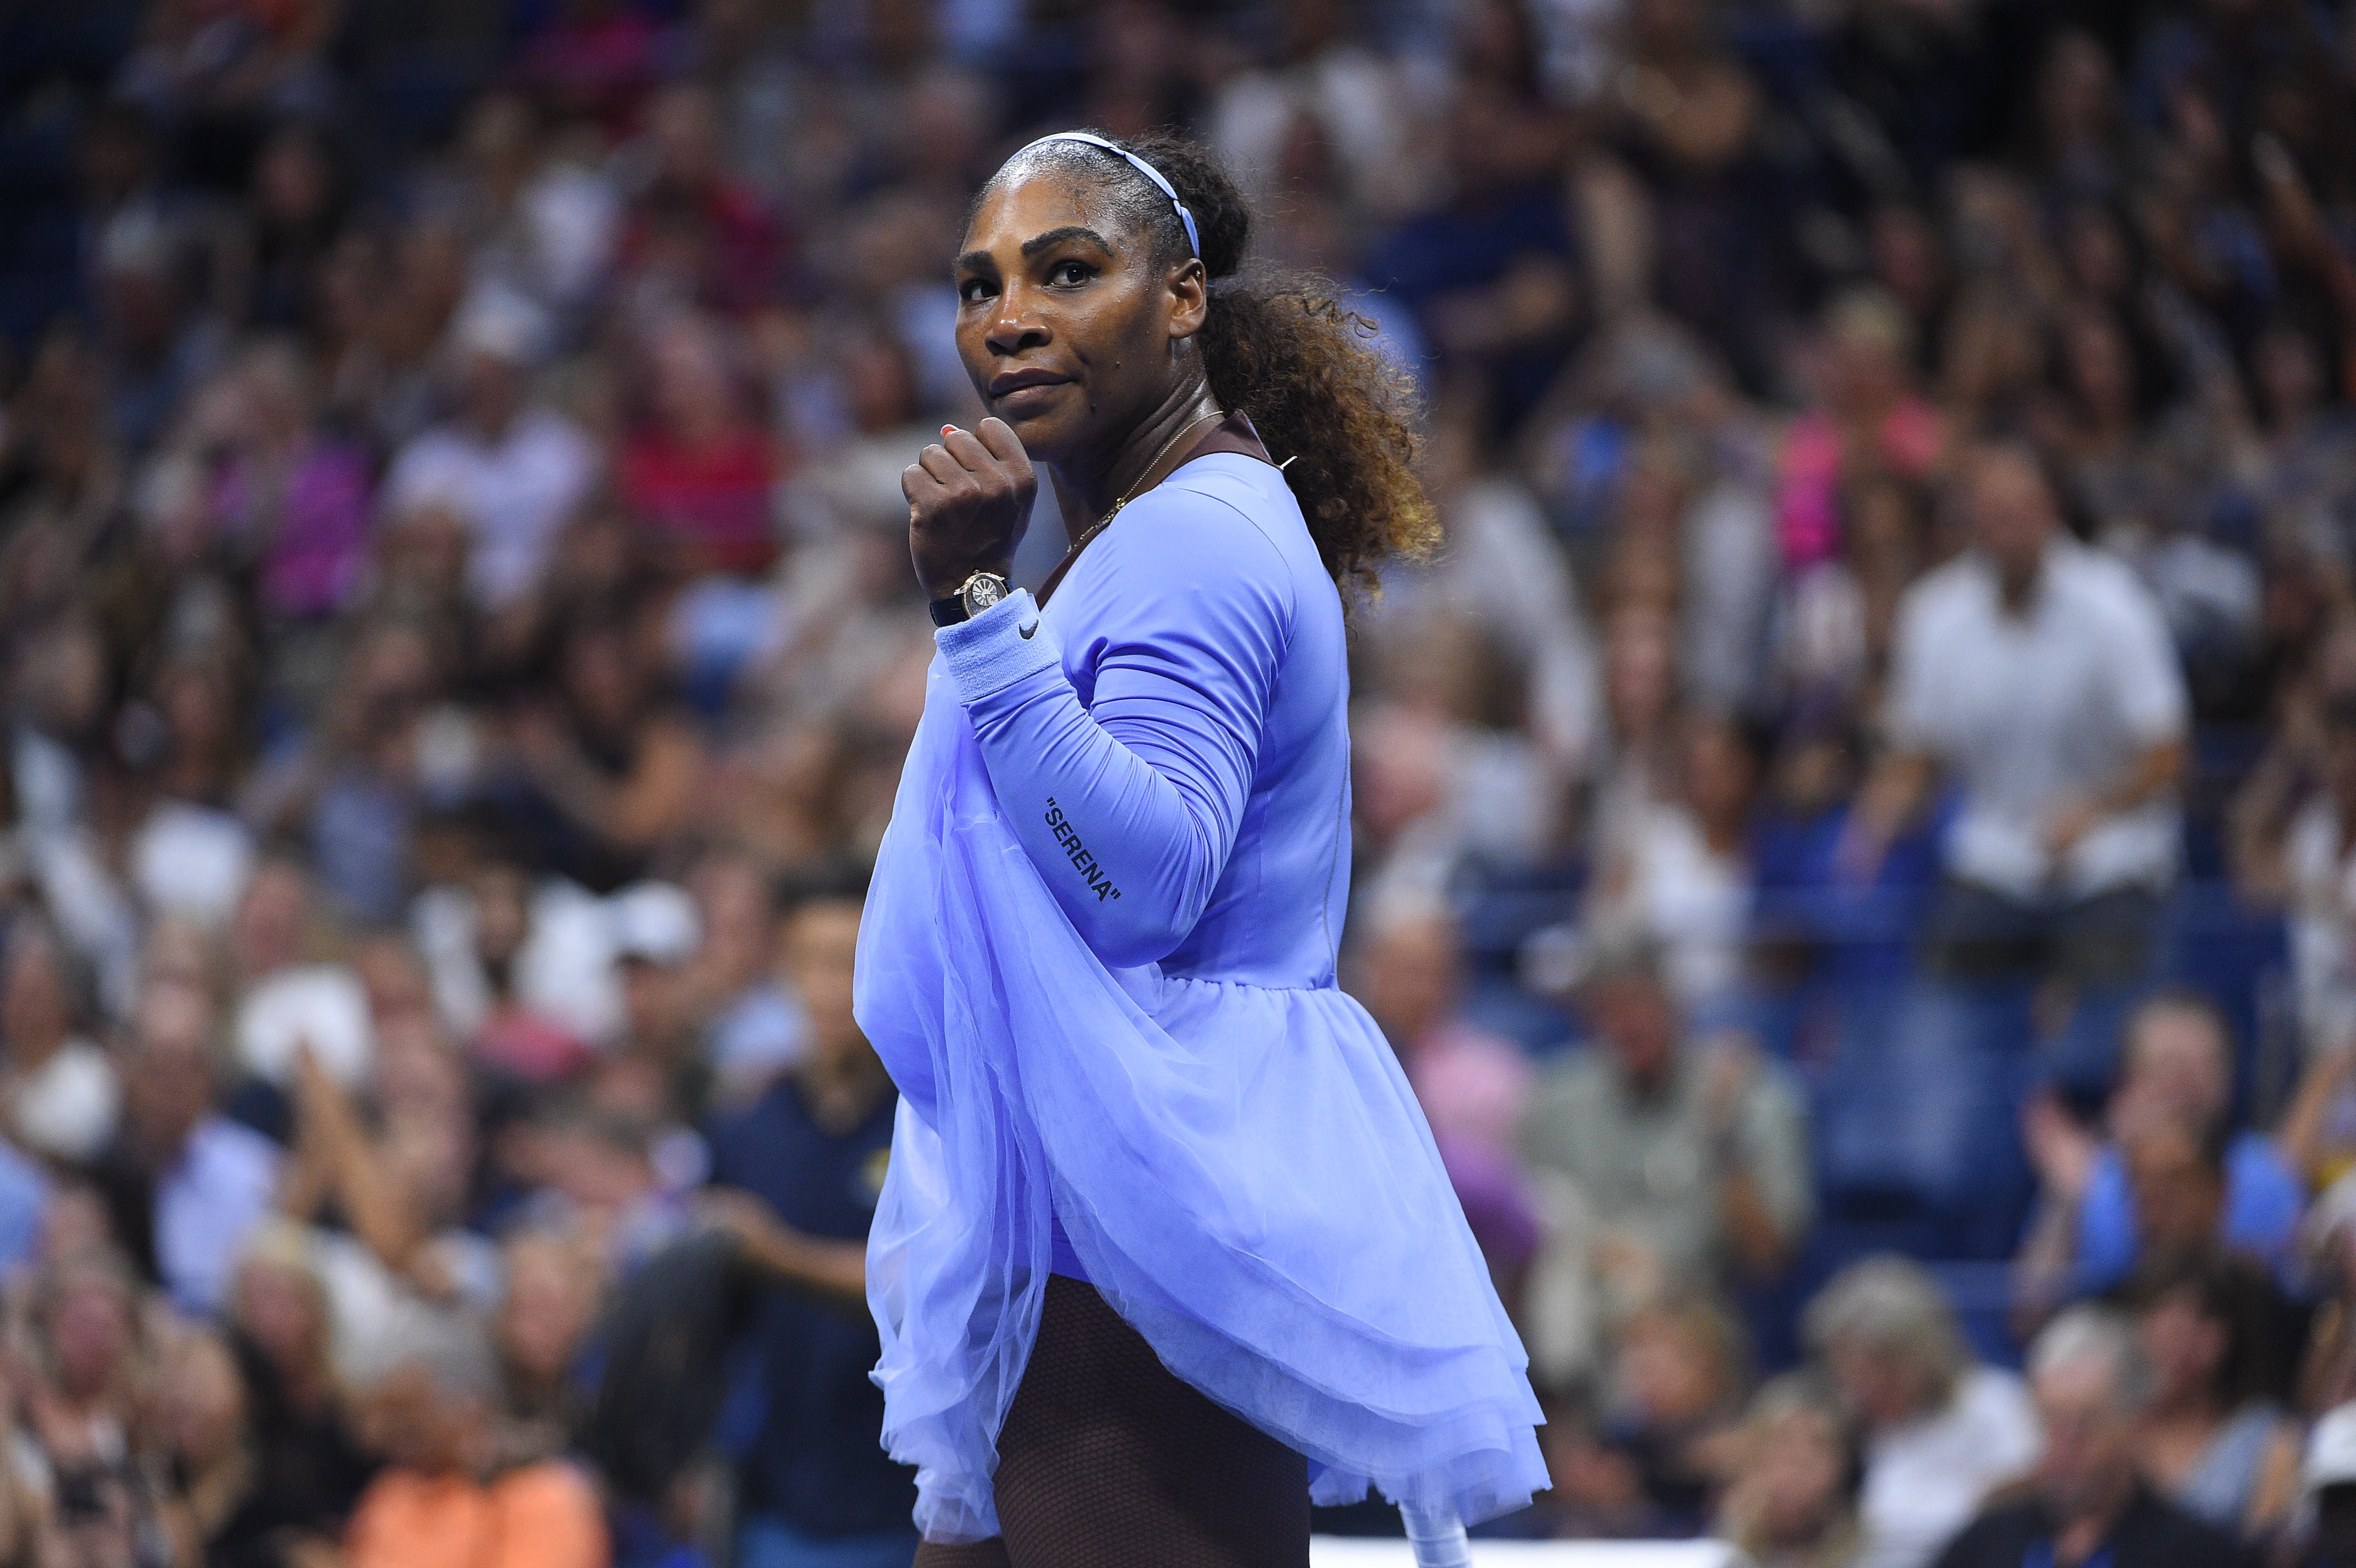 Serena Williams looking to her bow at the end of her semifinal match at the US Open 2018